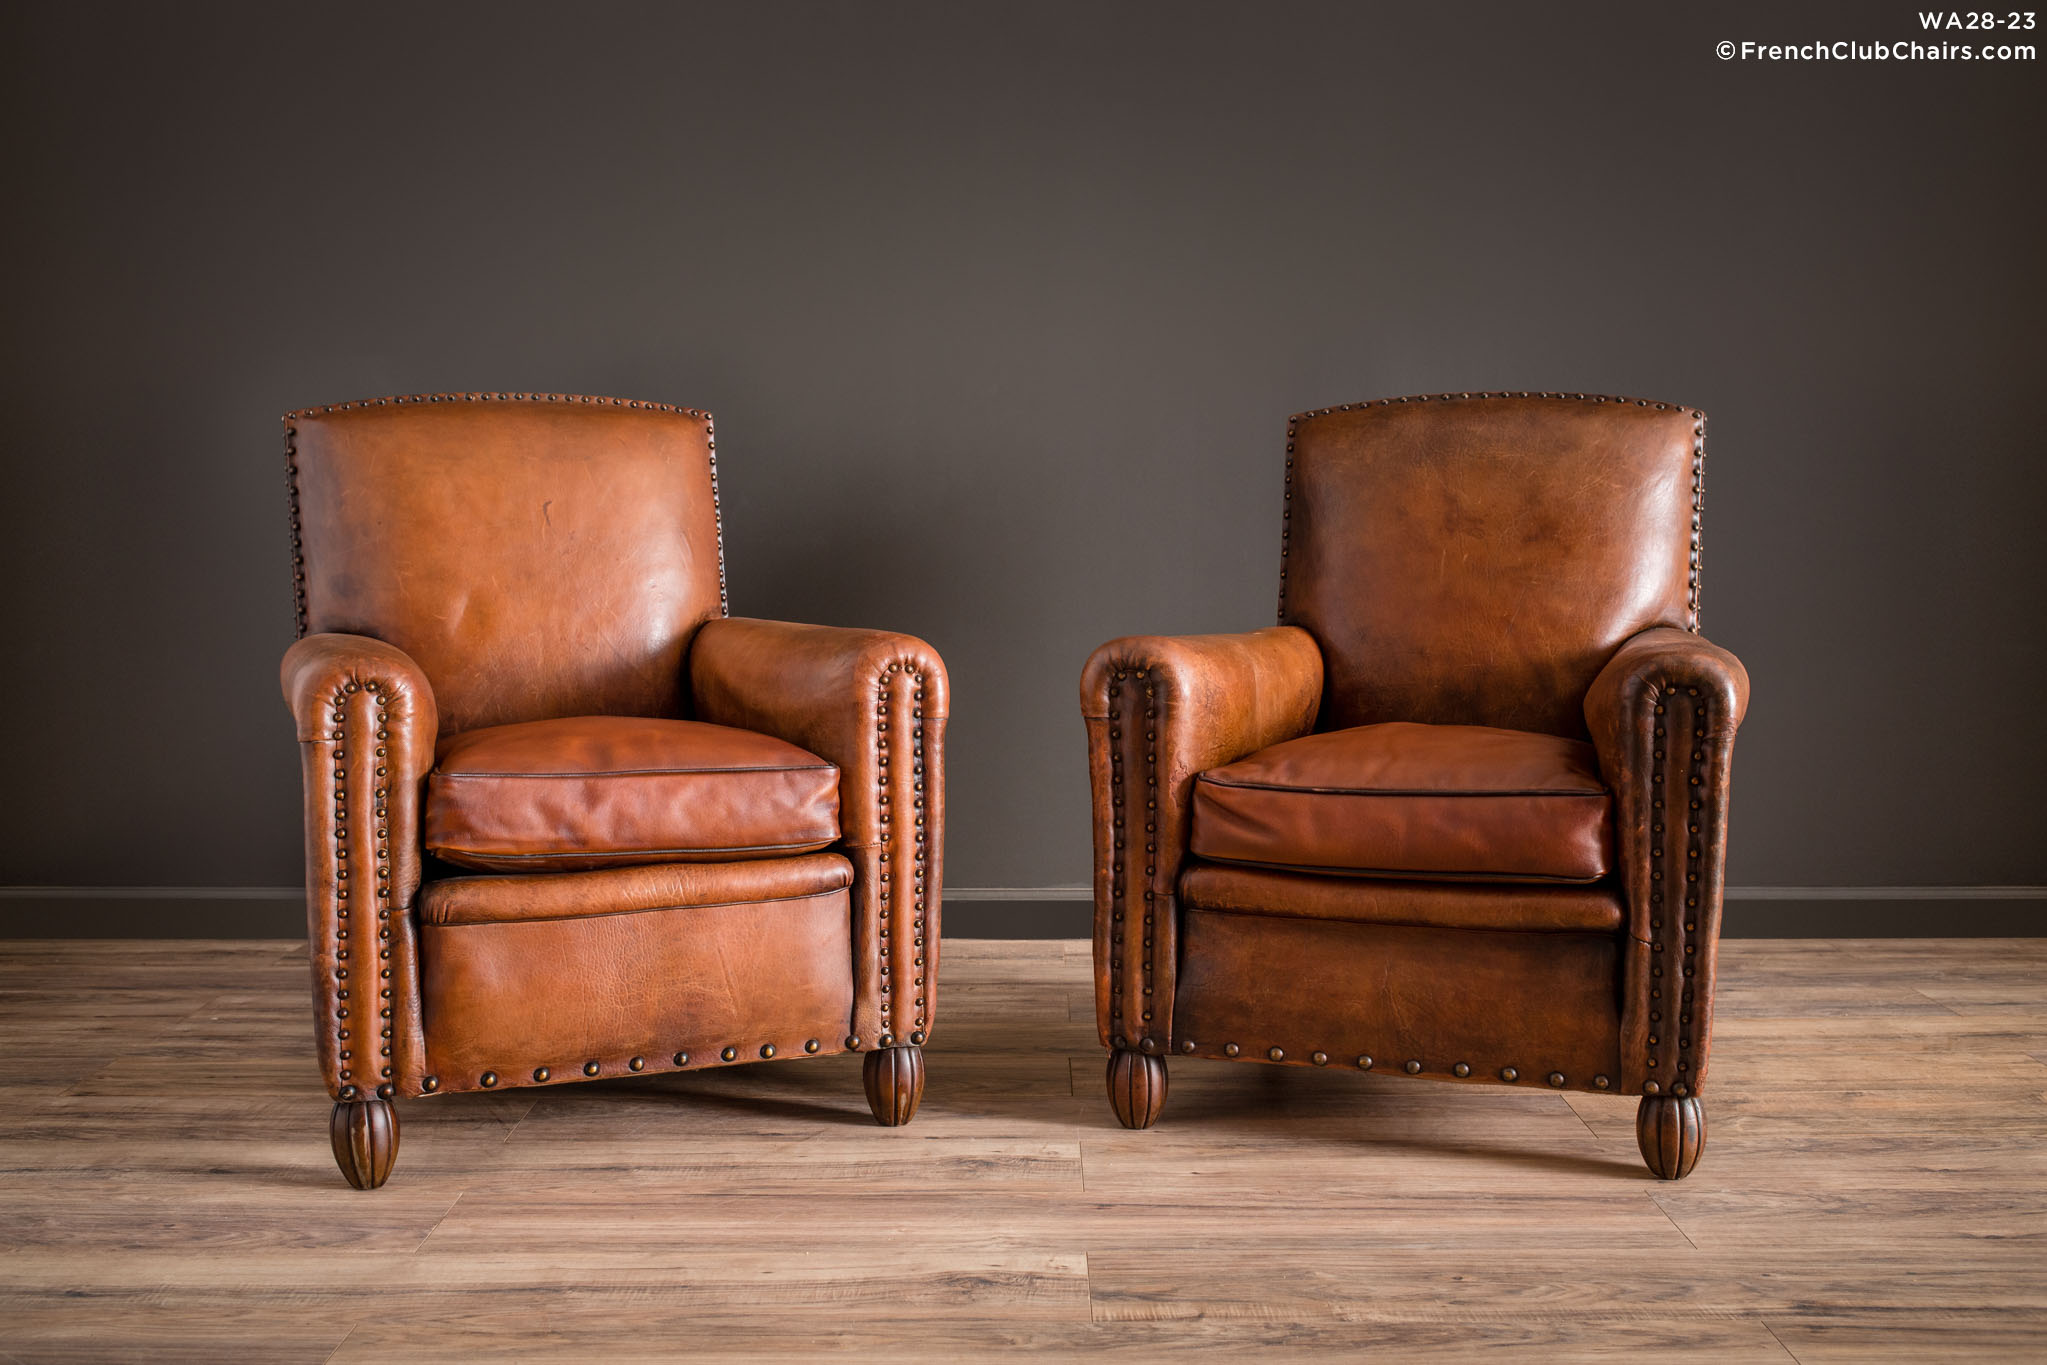 WA_28-23_Pontcharra_Nailed_Library_Pair_R_1TQ1-williams-antiks-leather-french-club-chair-wa_fcccom